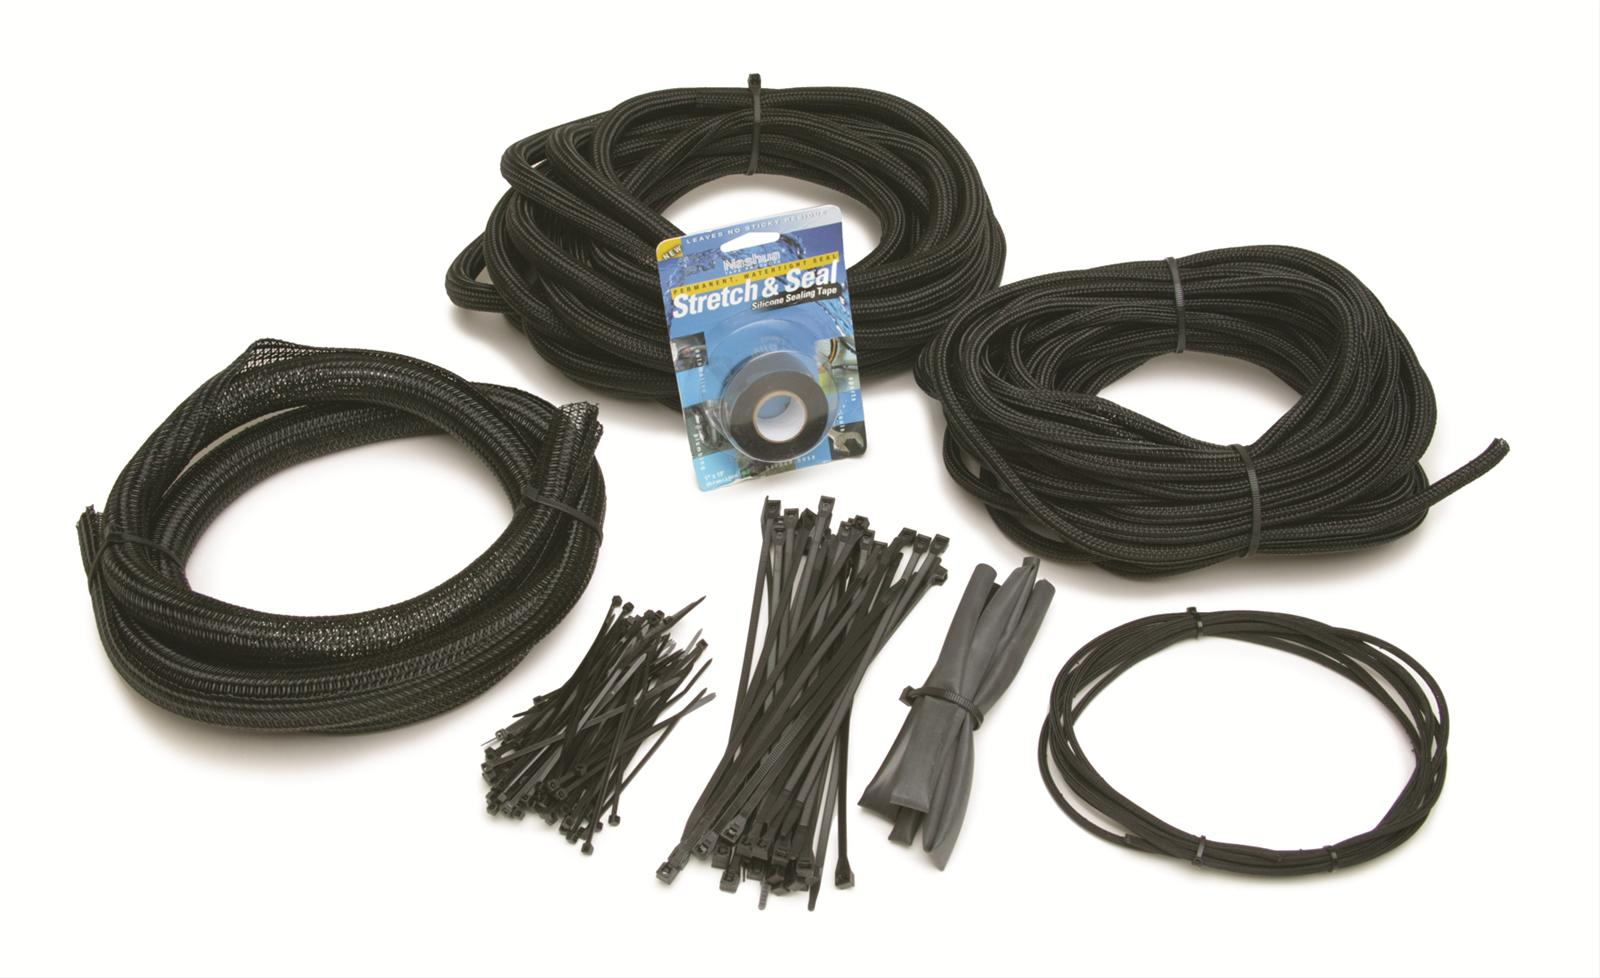 Painless Performance PowerBraid Chassis Harness Kits 70920 - Free Shipping  on Orders Over $49 at Summit Racing